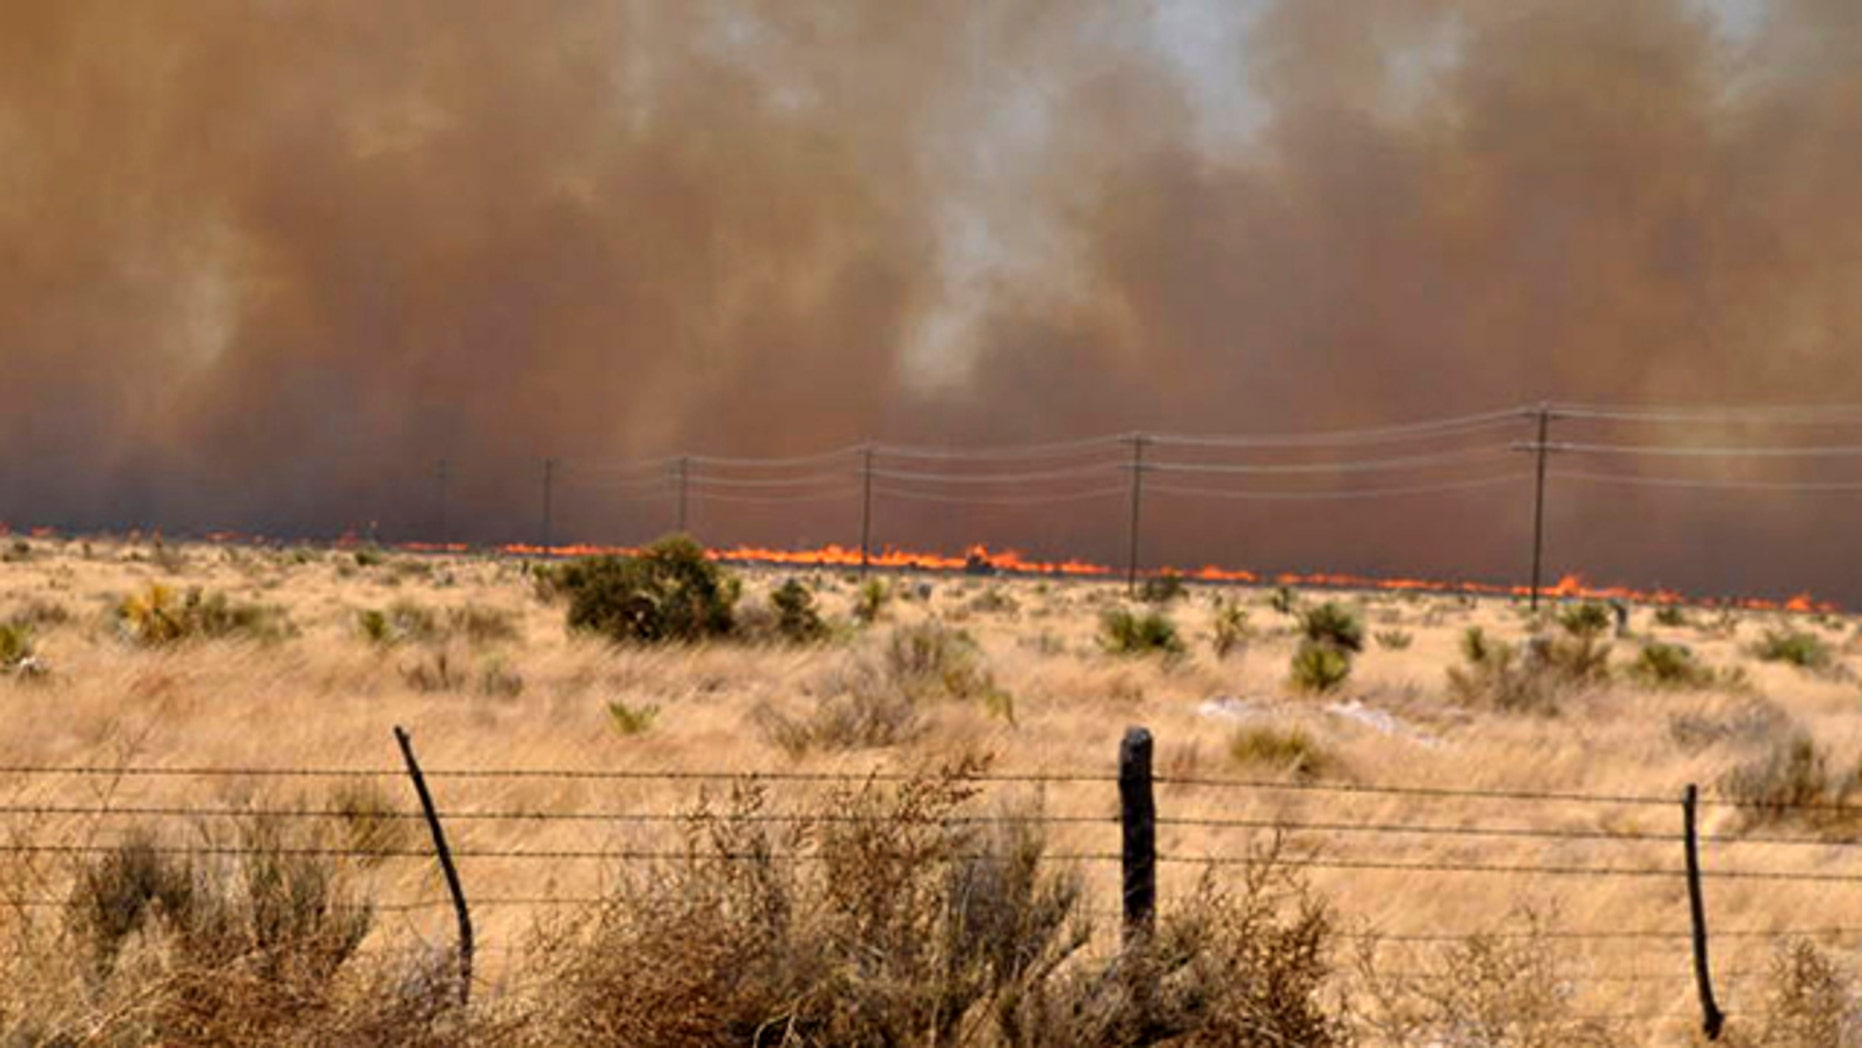 April 10, 2011: An uncontrolled wildfire burns at the Jeff Davis and Presidio County line near Fort Davis, Texas. A fast-moving wildfire had spread to more than 60,000 acres in Presidio County and Jeff Davis County, where it destroyed about 20 homes in Fort Davis.